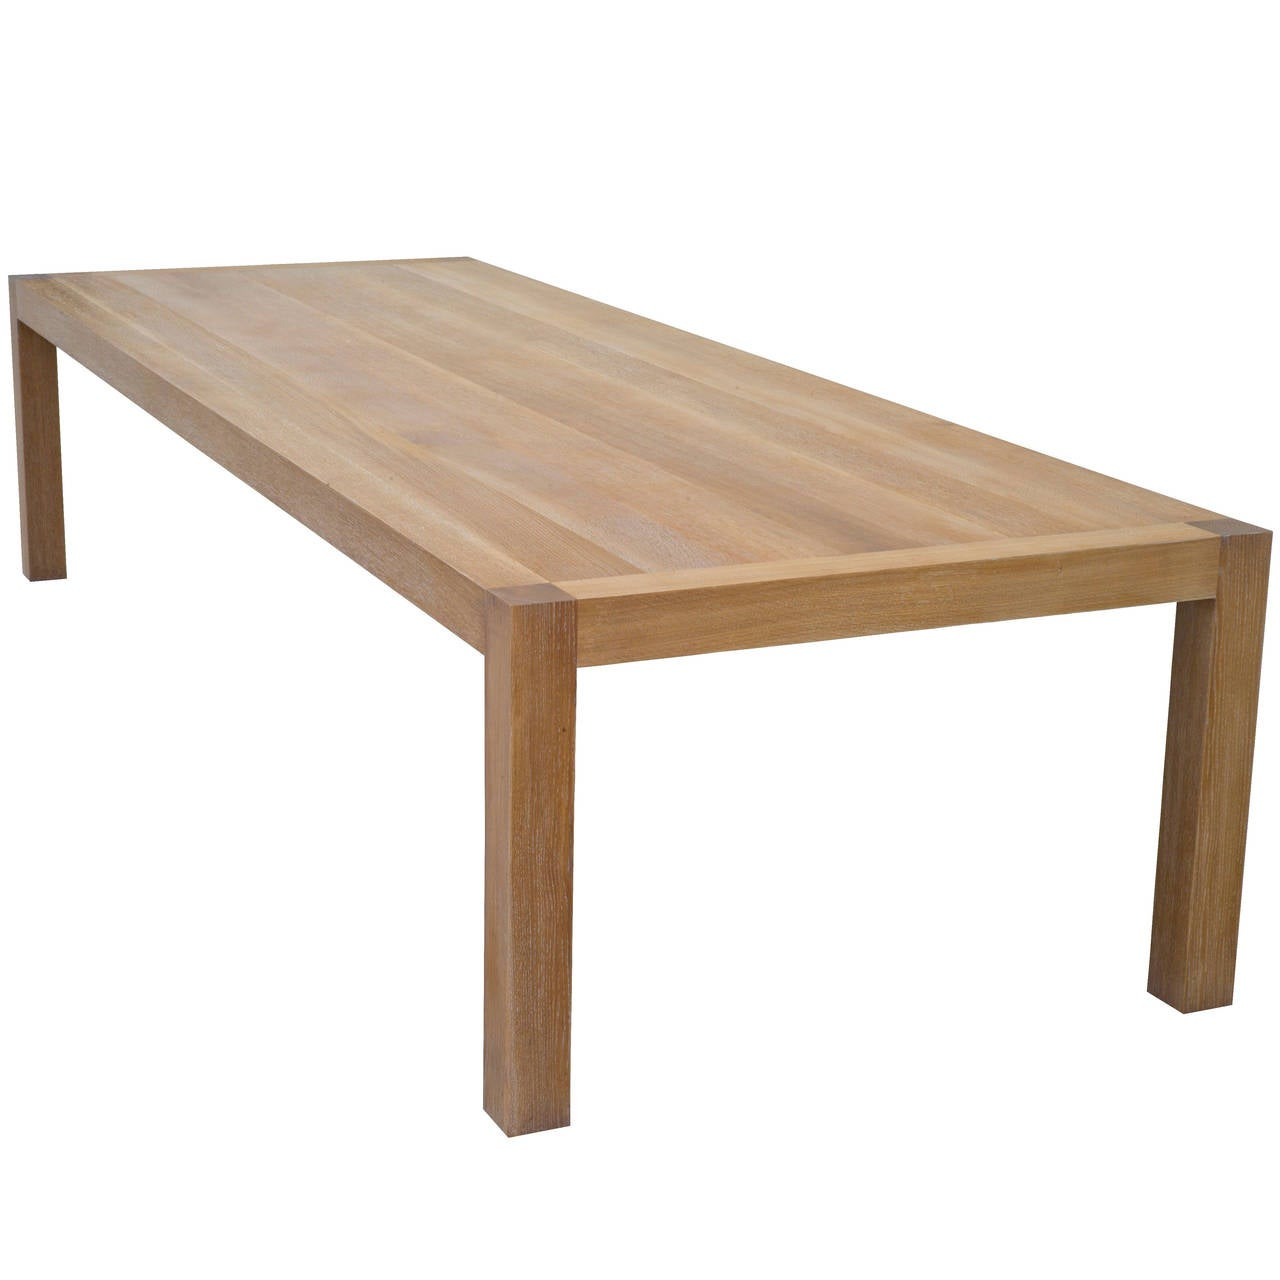 Top Parsons Table with Classic Limed Oak Finish, Built to Order by  WX33